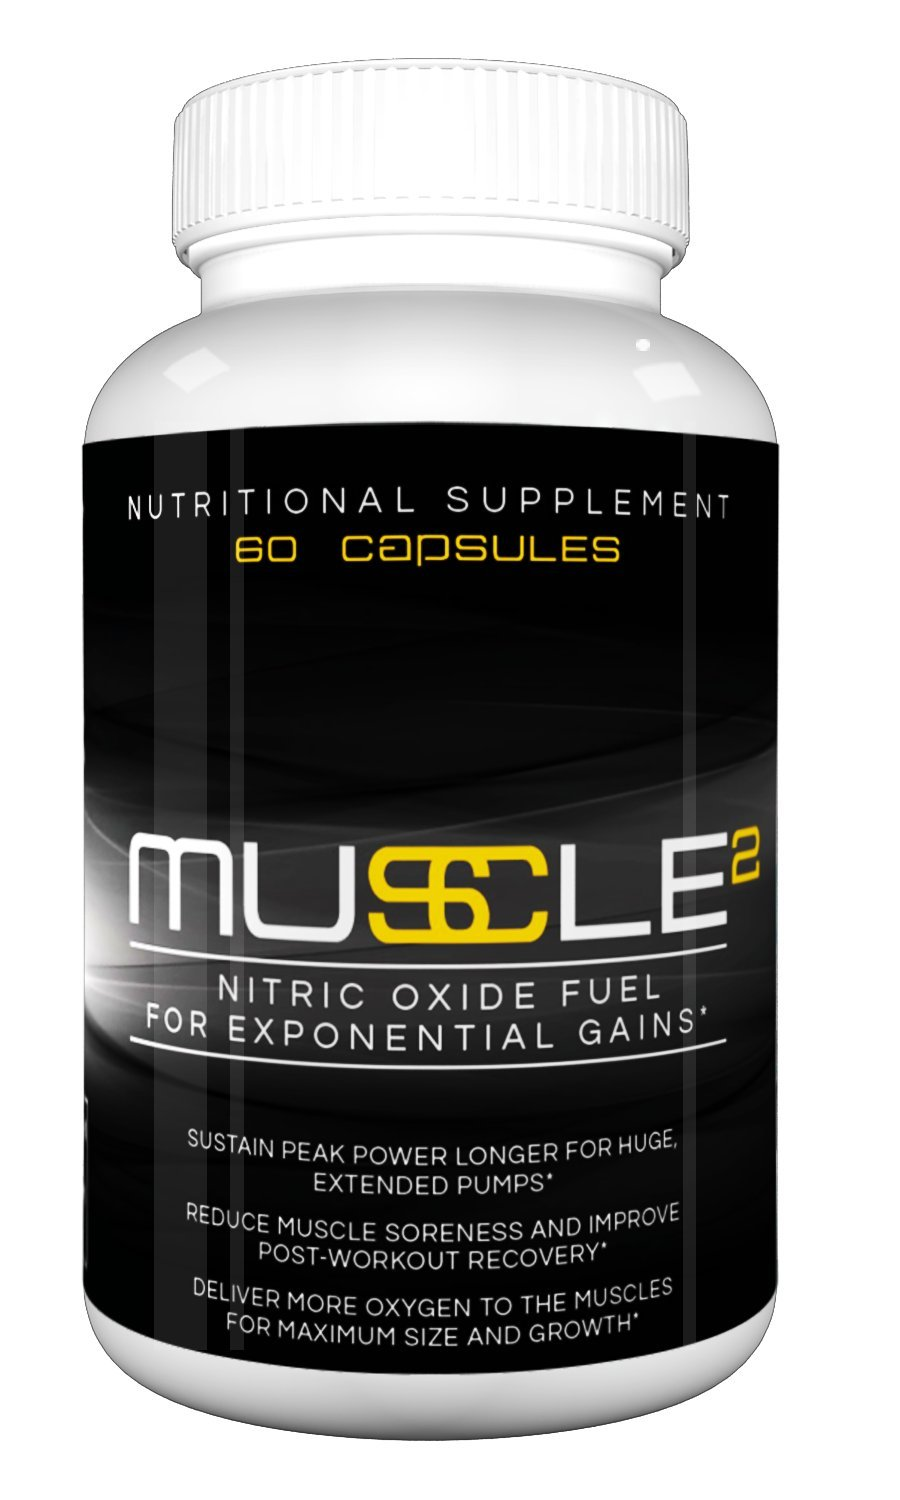 MUSCLE SQUARED - Premium Nitric Oxide Booster with L-Arginine for Exponential Muscle Gain